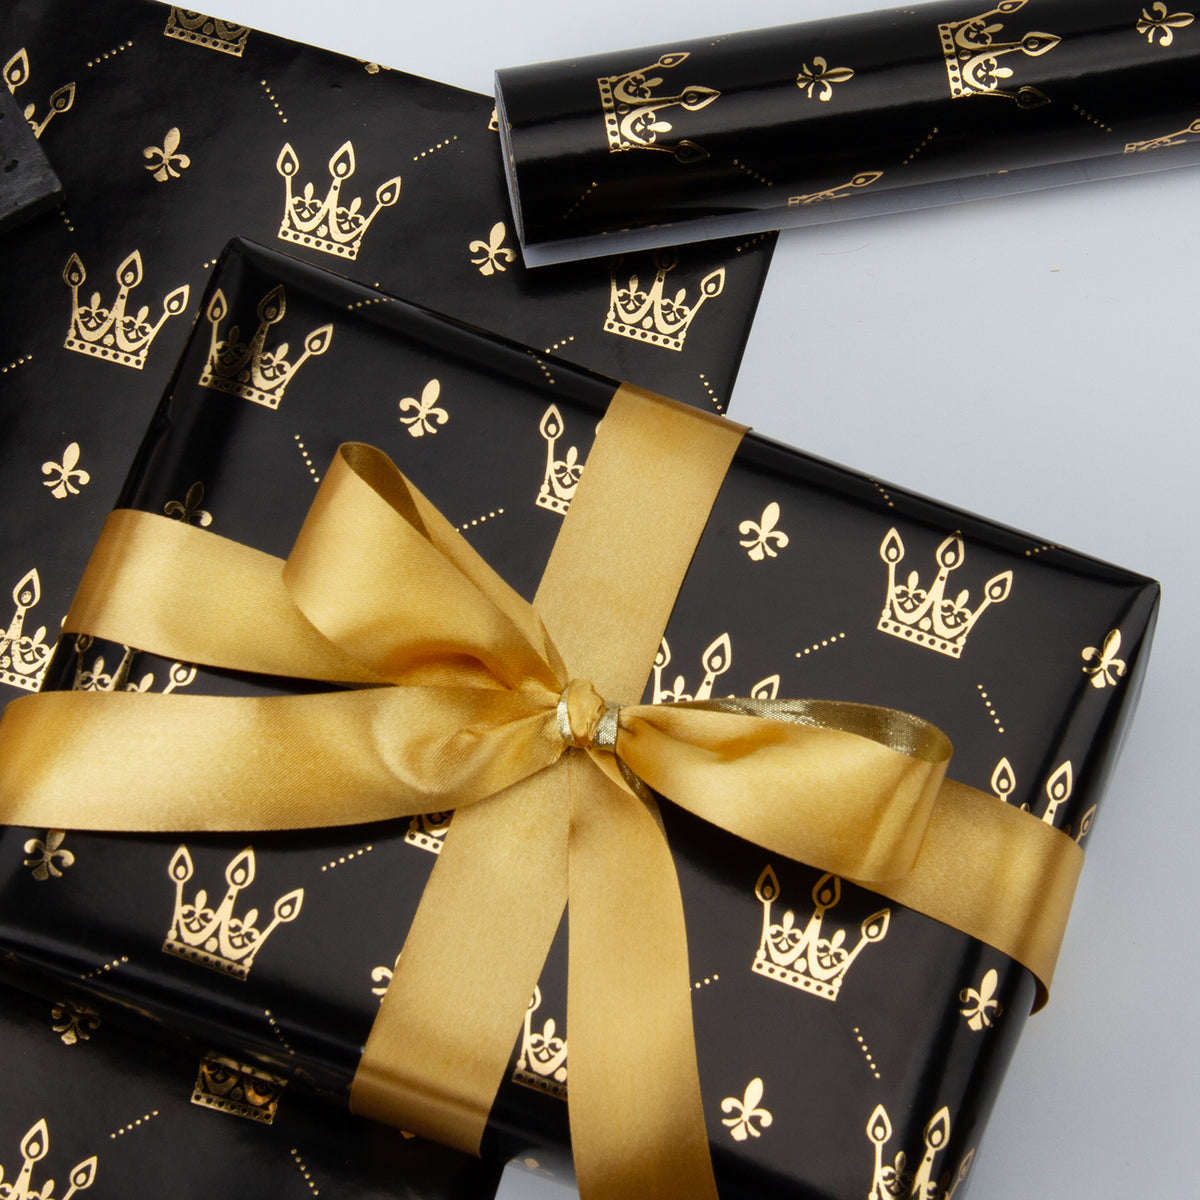 Wrapaholic-Gold-Foil-Crown-Design- with-Cut-Lines- Gift-Wrapping-Paper-Roll-4